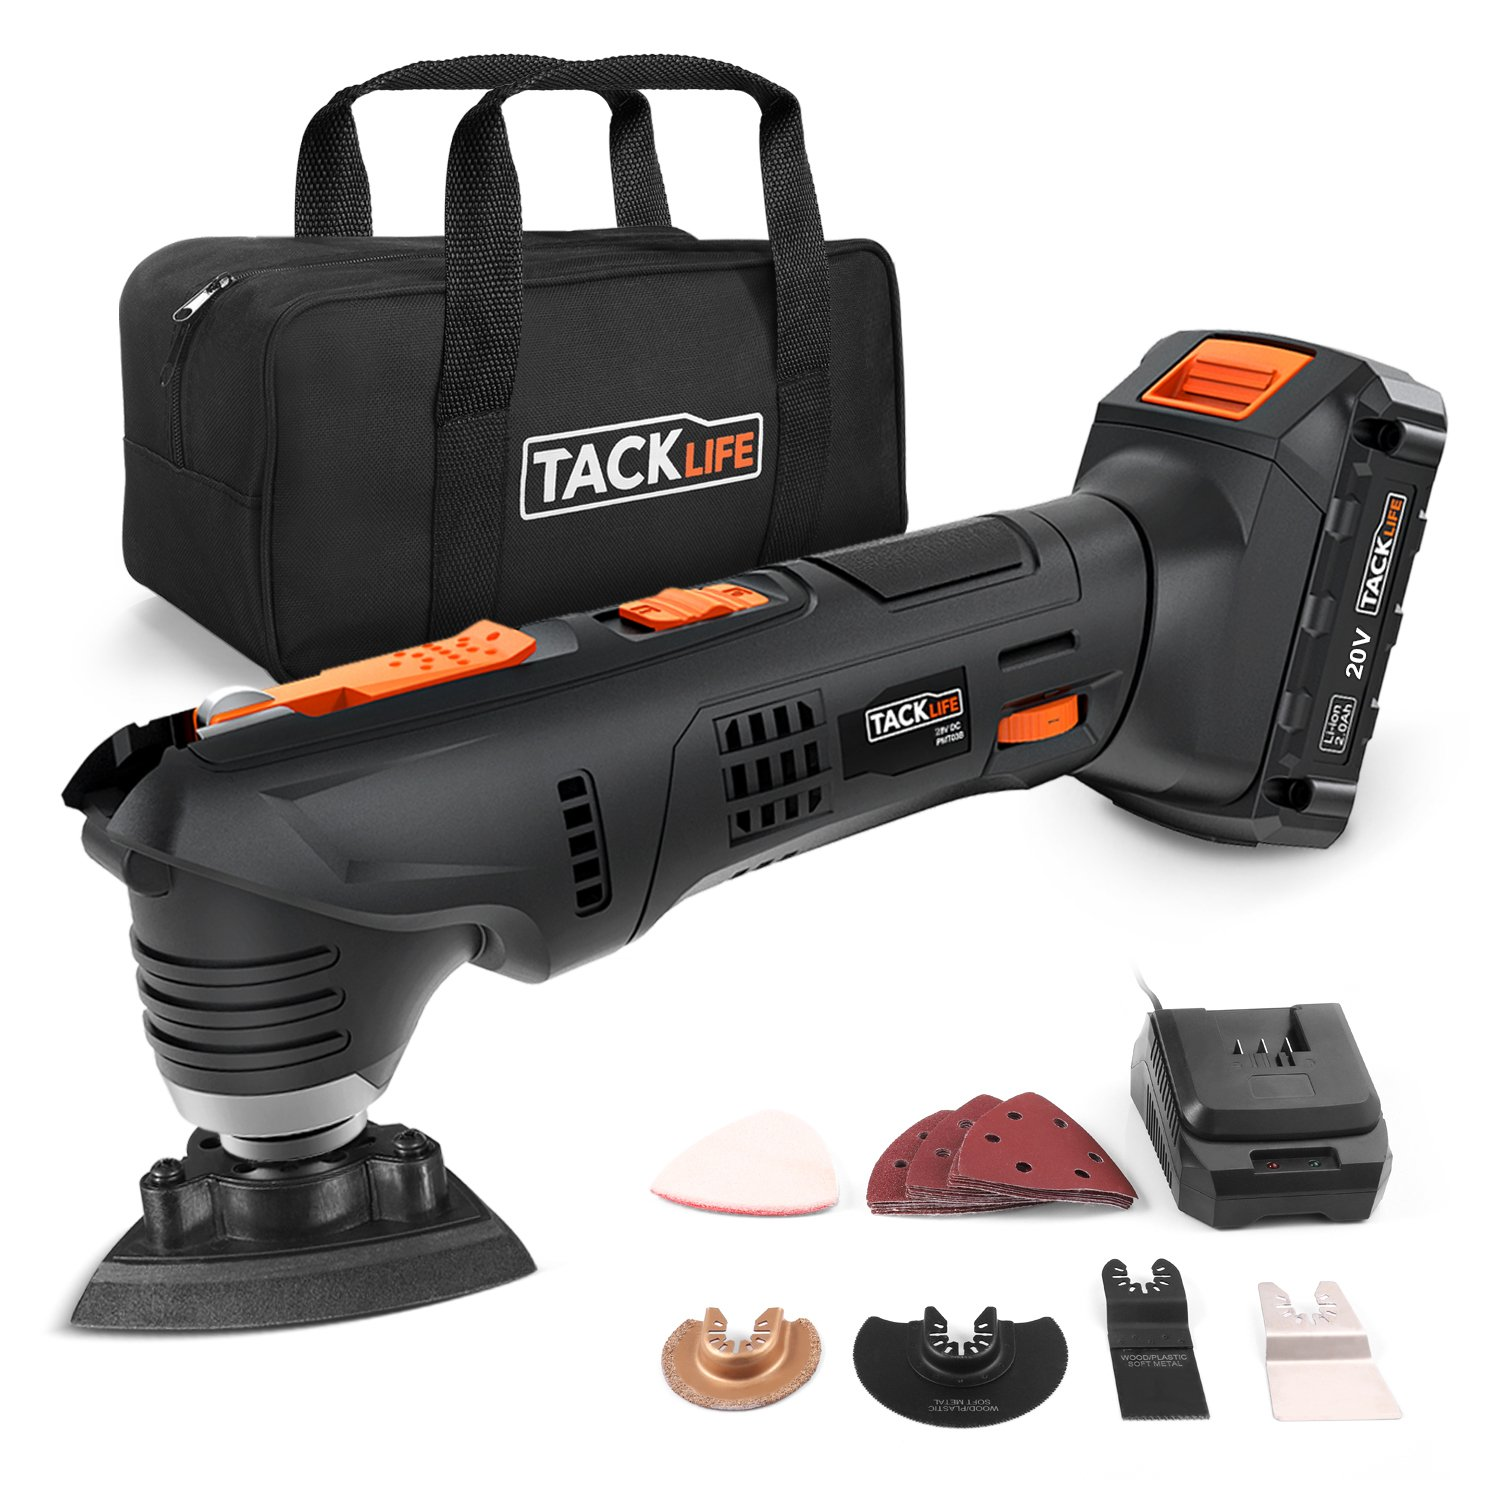 Oscillating Tool, Tacklife PMT03B 20V Max Cordless Multifunctional Tool, 2.0Ah Lithium-Ion Battery, 1 Hour Fast Charge, 6 Variable Speed for Grout Removing, Scraping, Cutting and Polishing